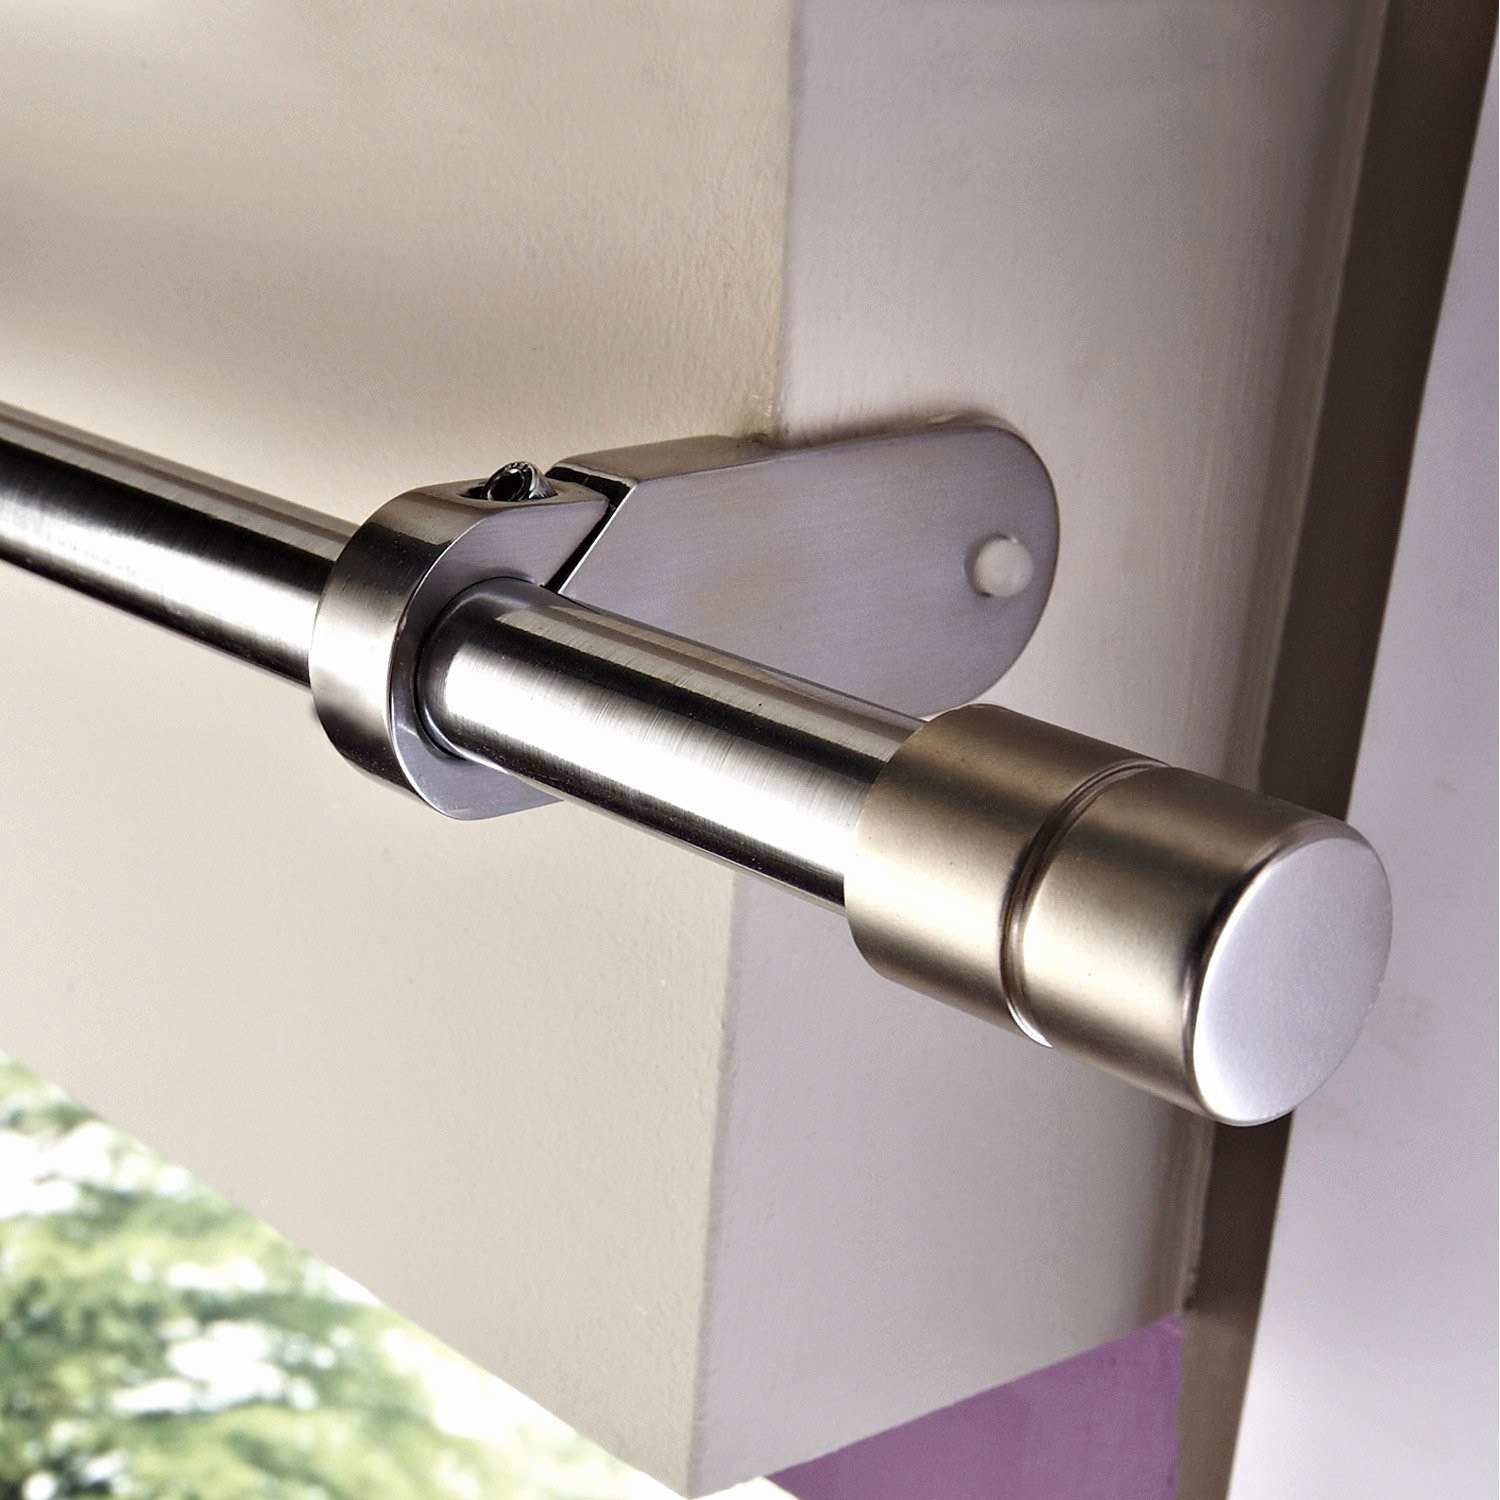 Leroy Merlin Rideaux Chambre Awesome Rideau Isolant destiné Rideau Isolant Thermique Leroy Merlin